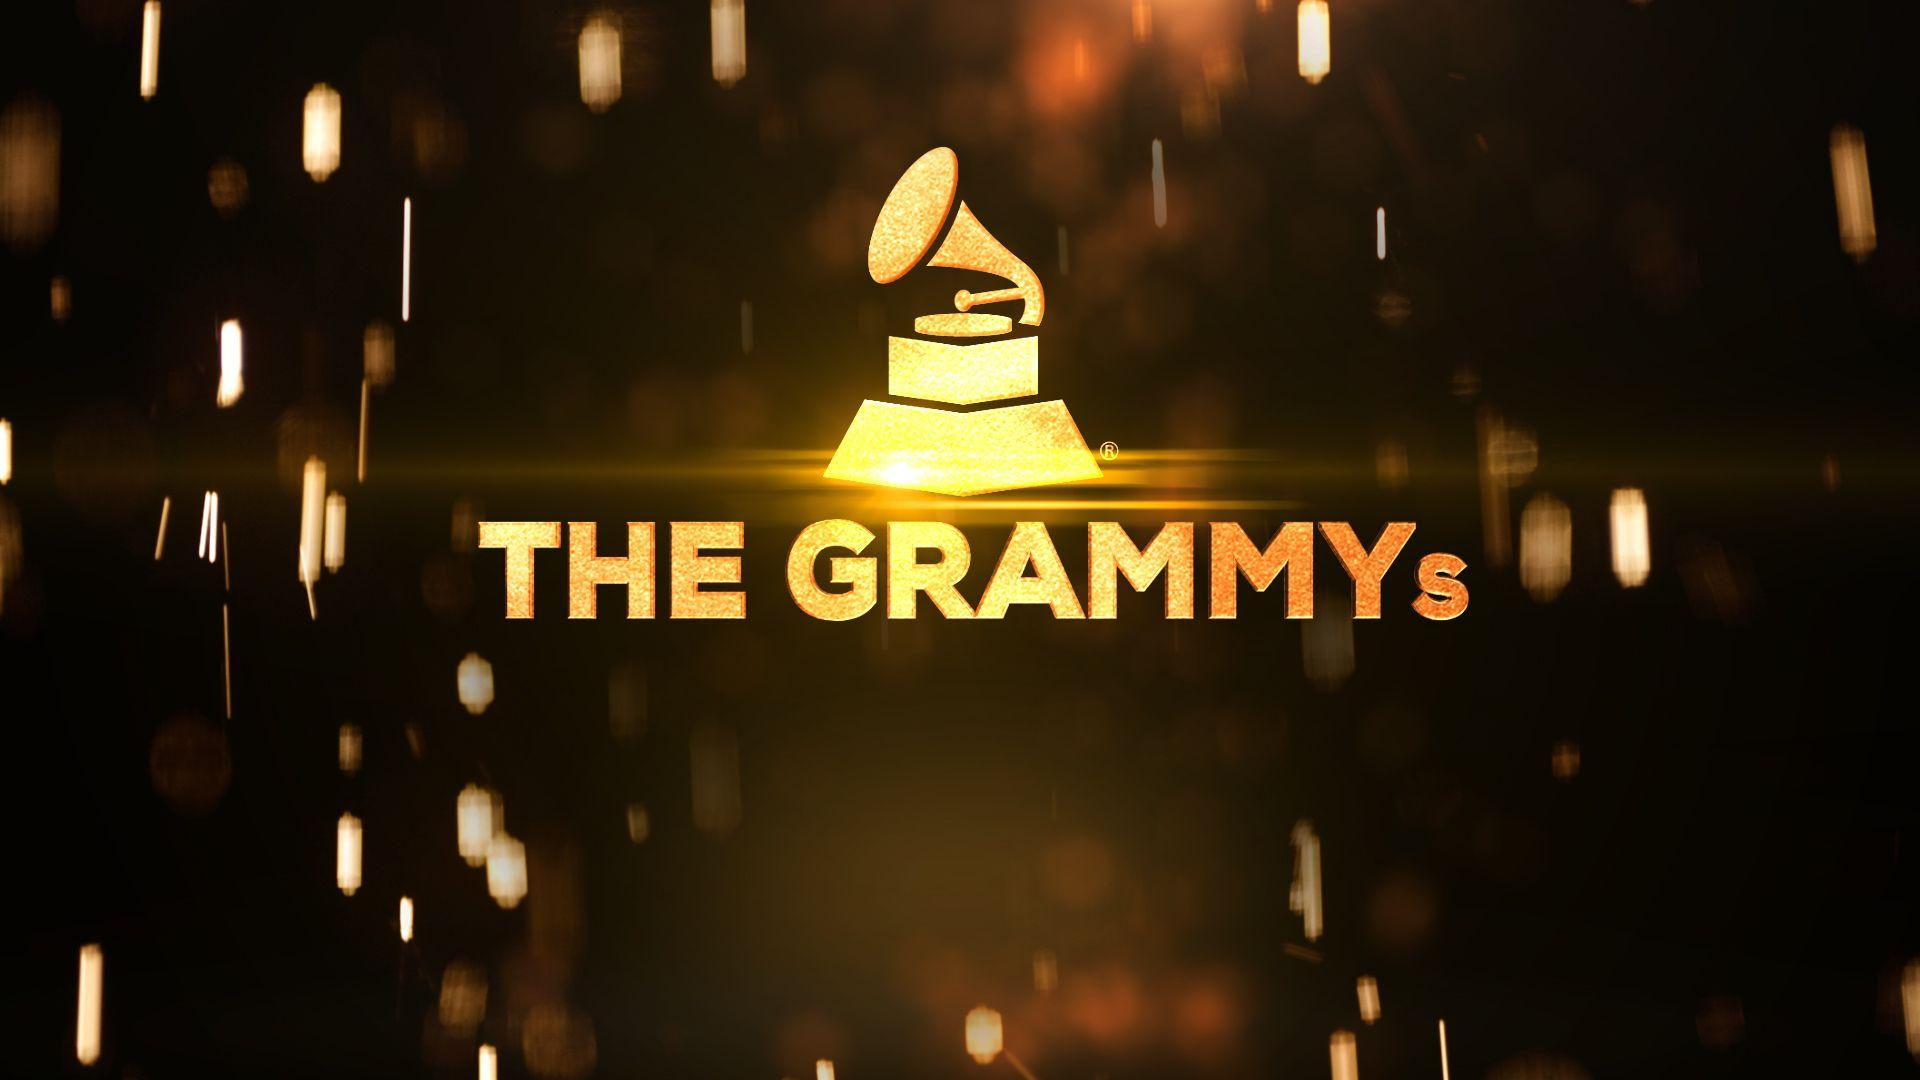 the grammys wallpapers wallpaper cave the grammys wallpapers wallpaper cave